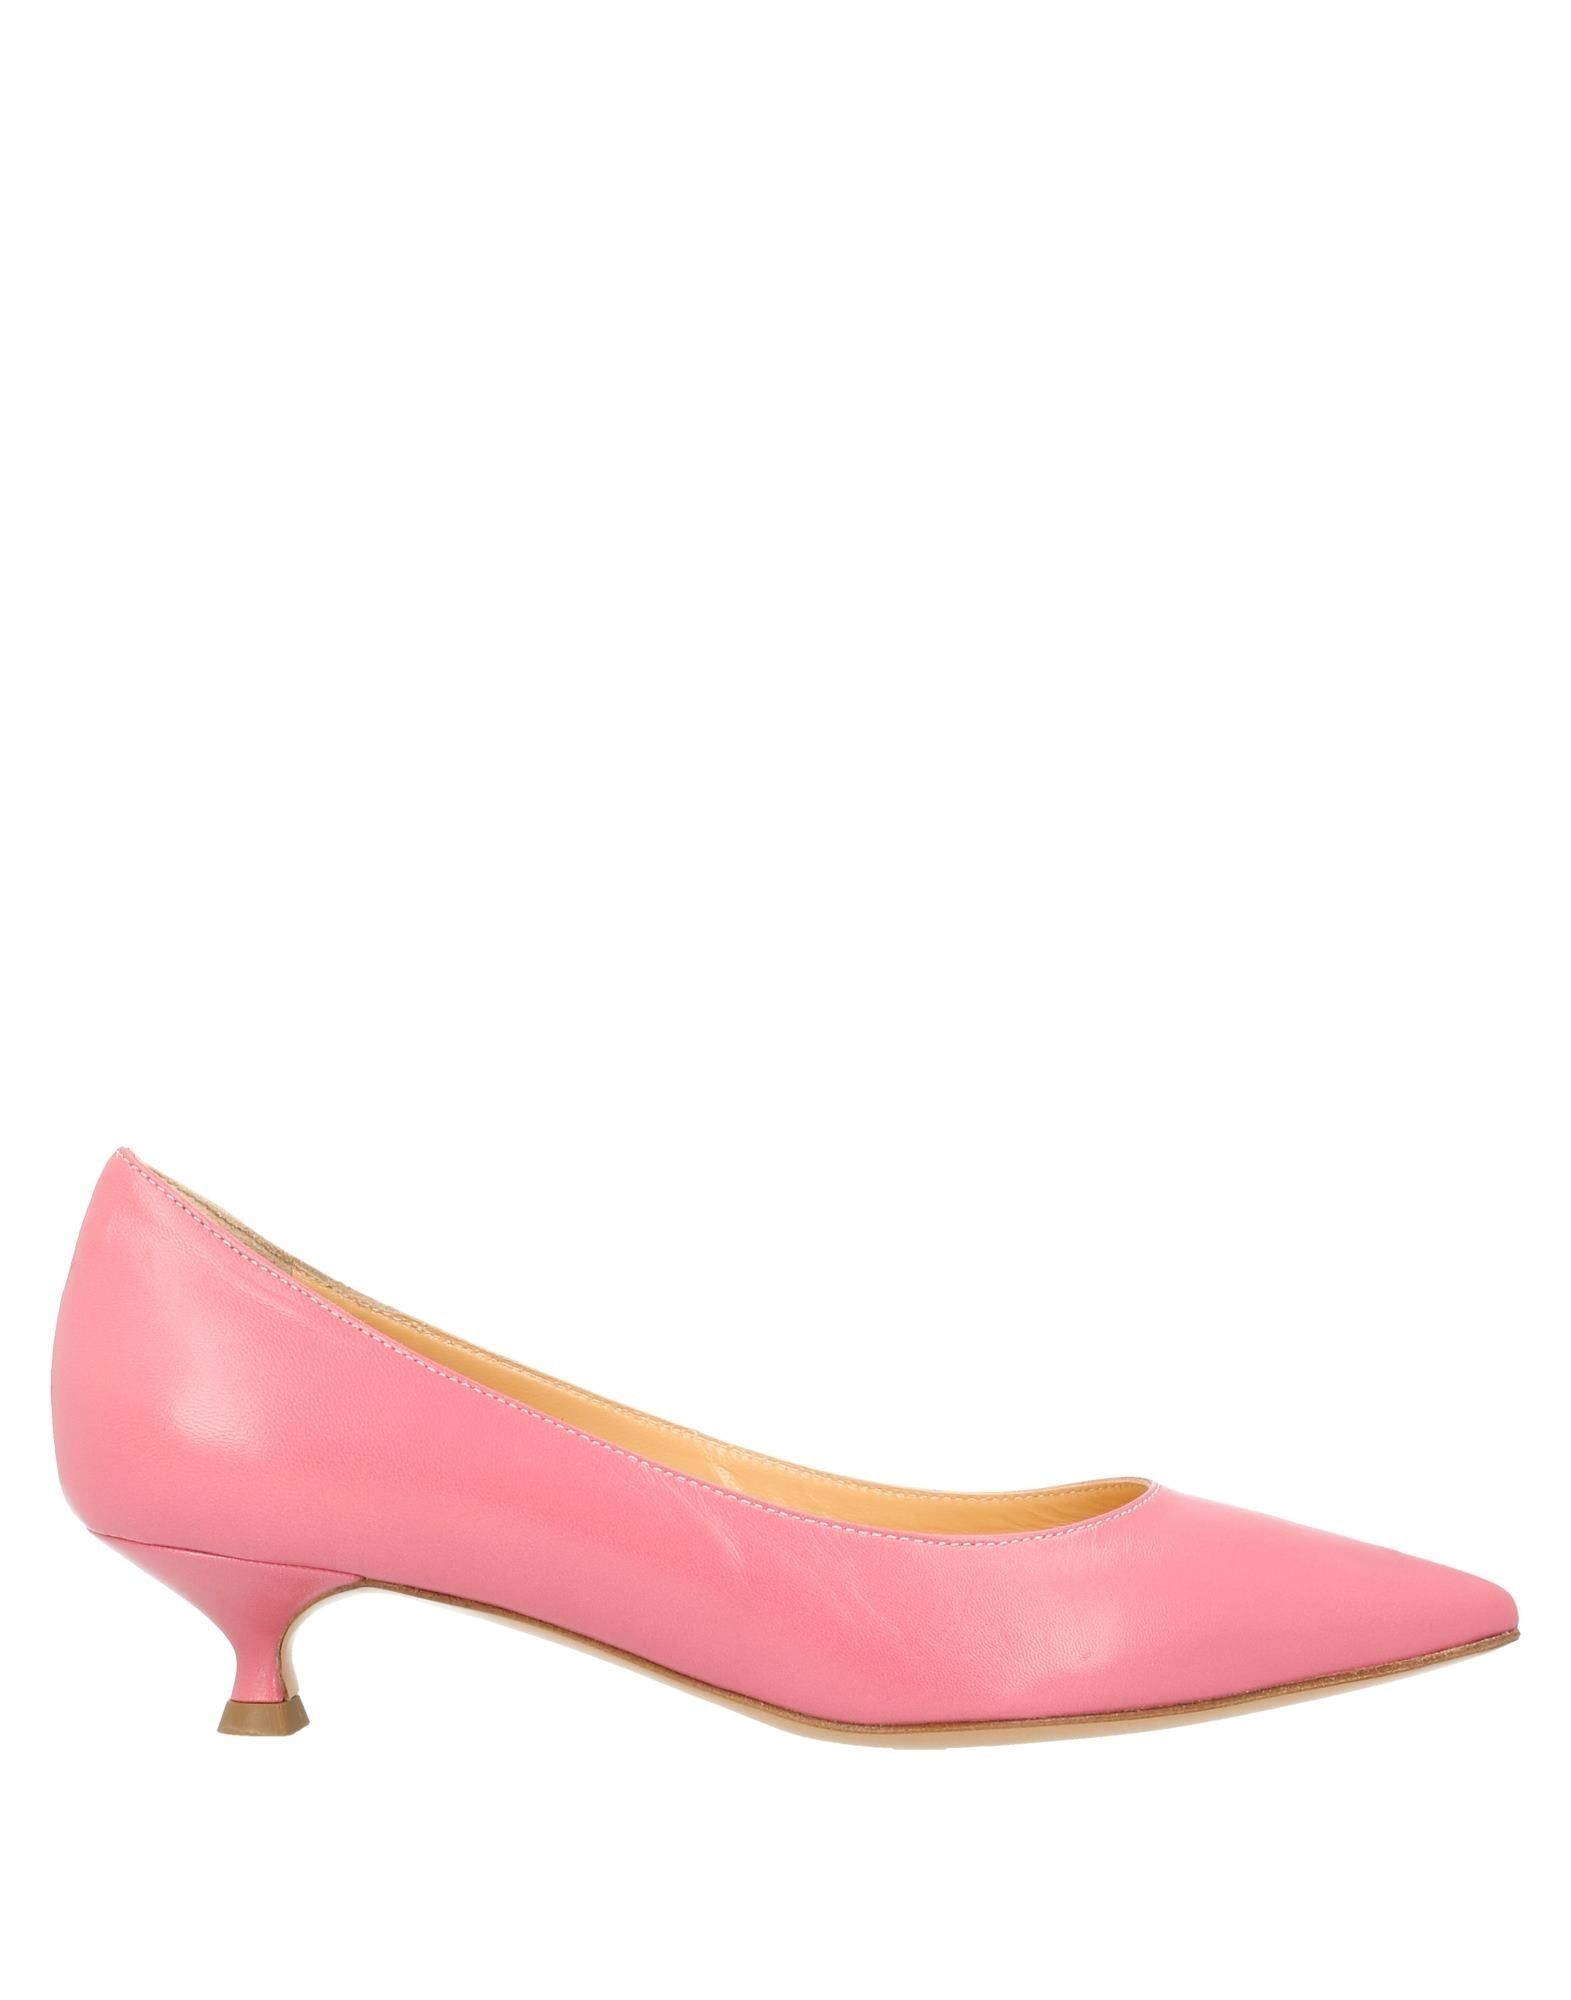 CHIARINI BOLOGNA Pumps - Item 11816002